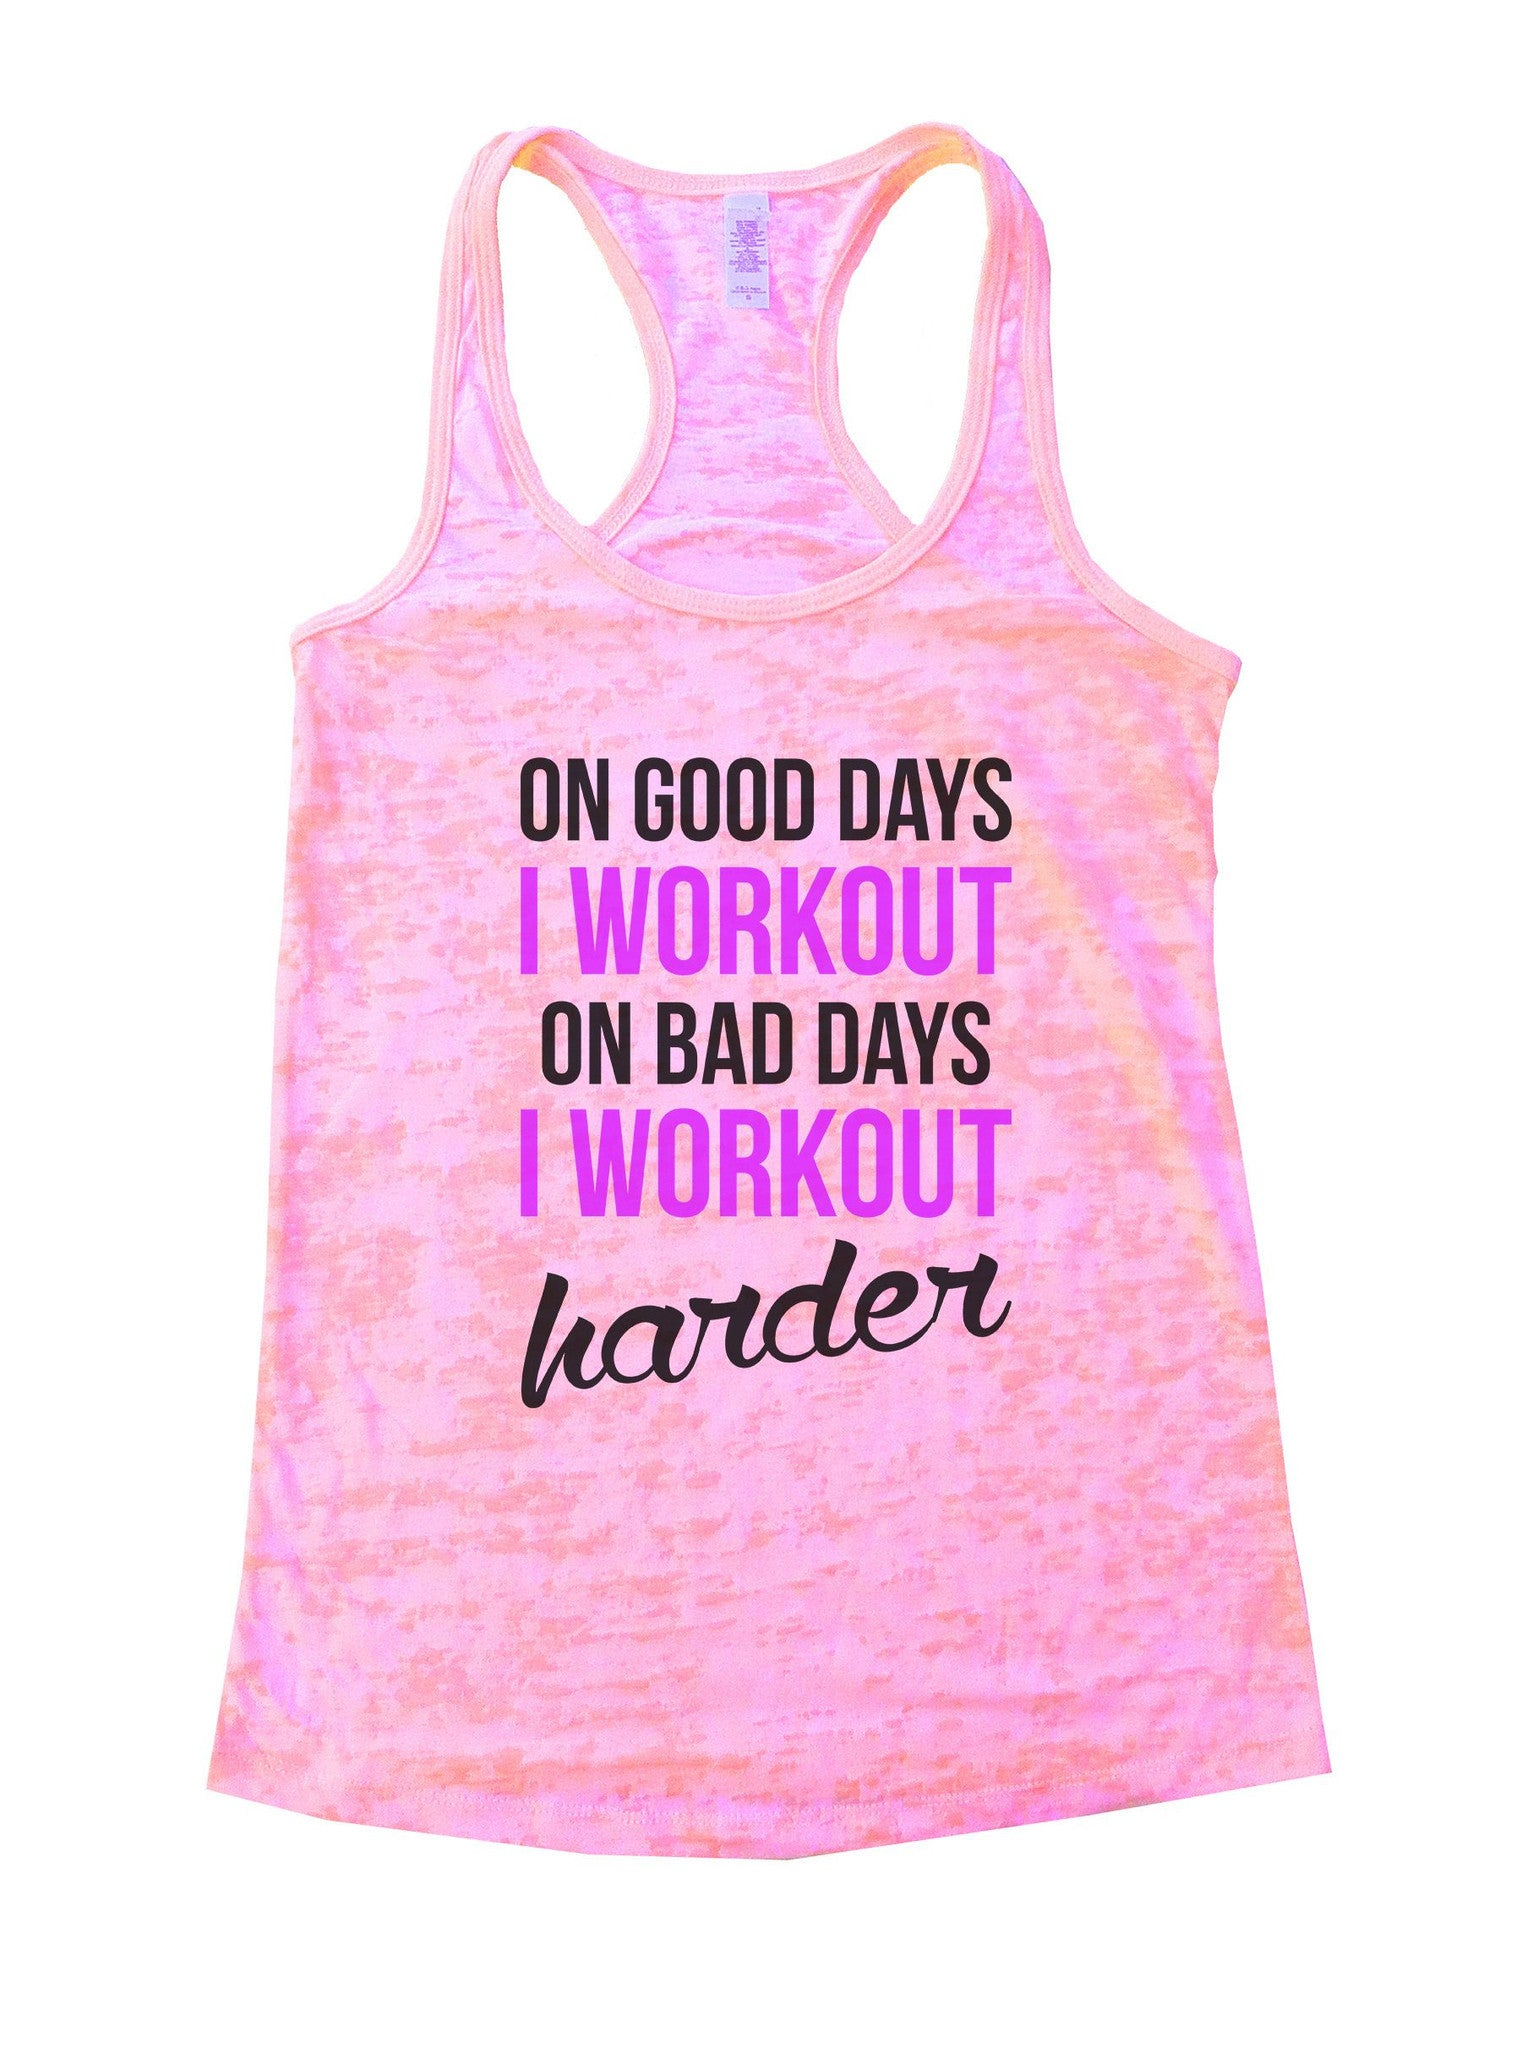 On Good Days I Workout On Bad Days I Workout Harder Burnout Tank Top By BurnoutTankTops.com - 850 - Funny Shirts Tank Tops Burnouts and Triblends  - 1